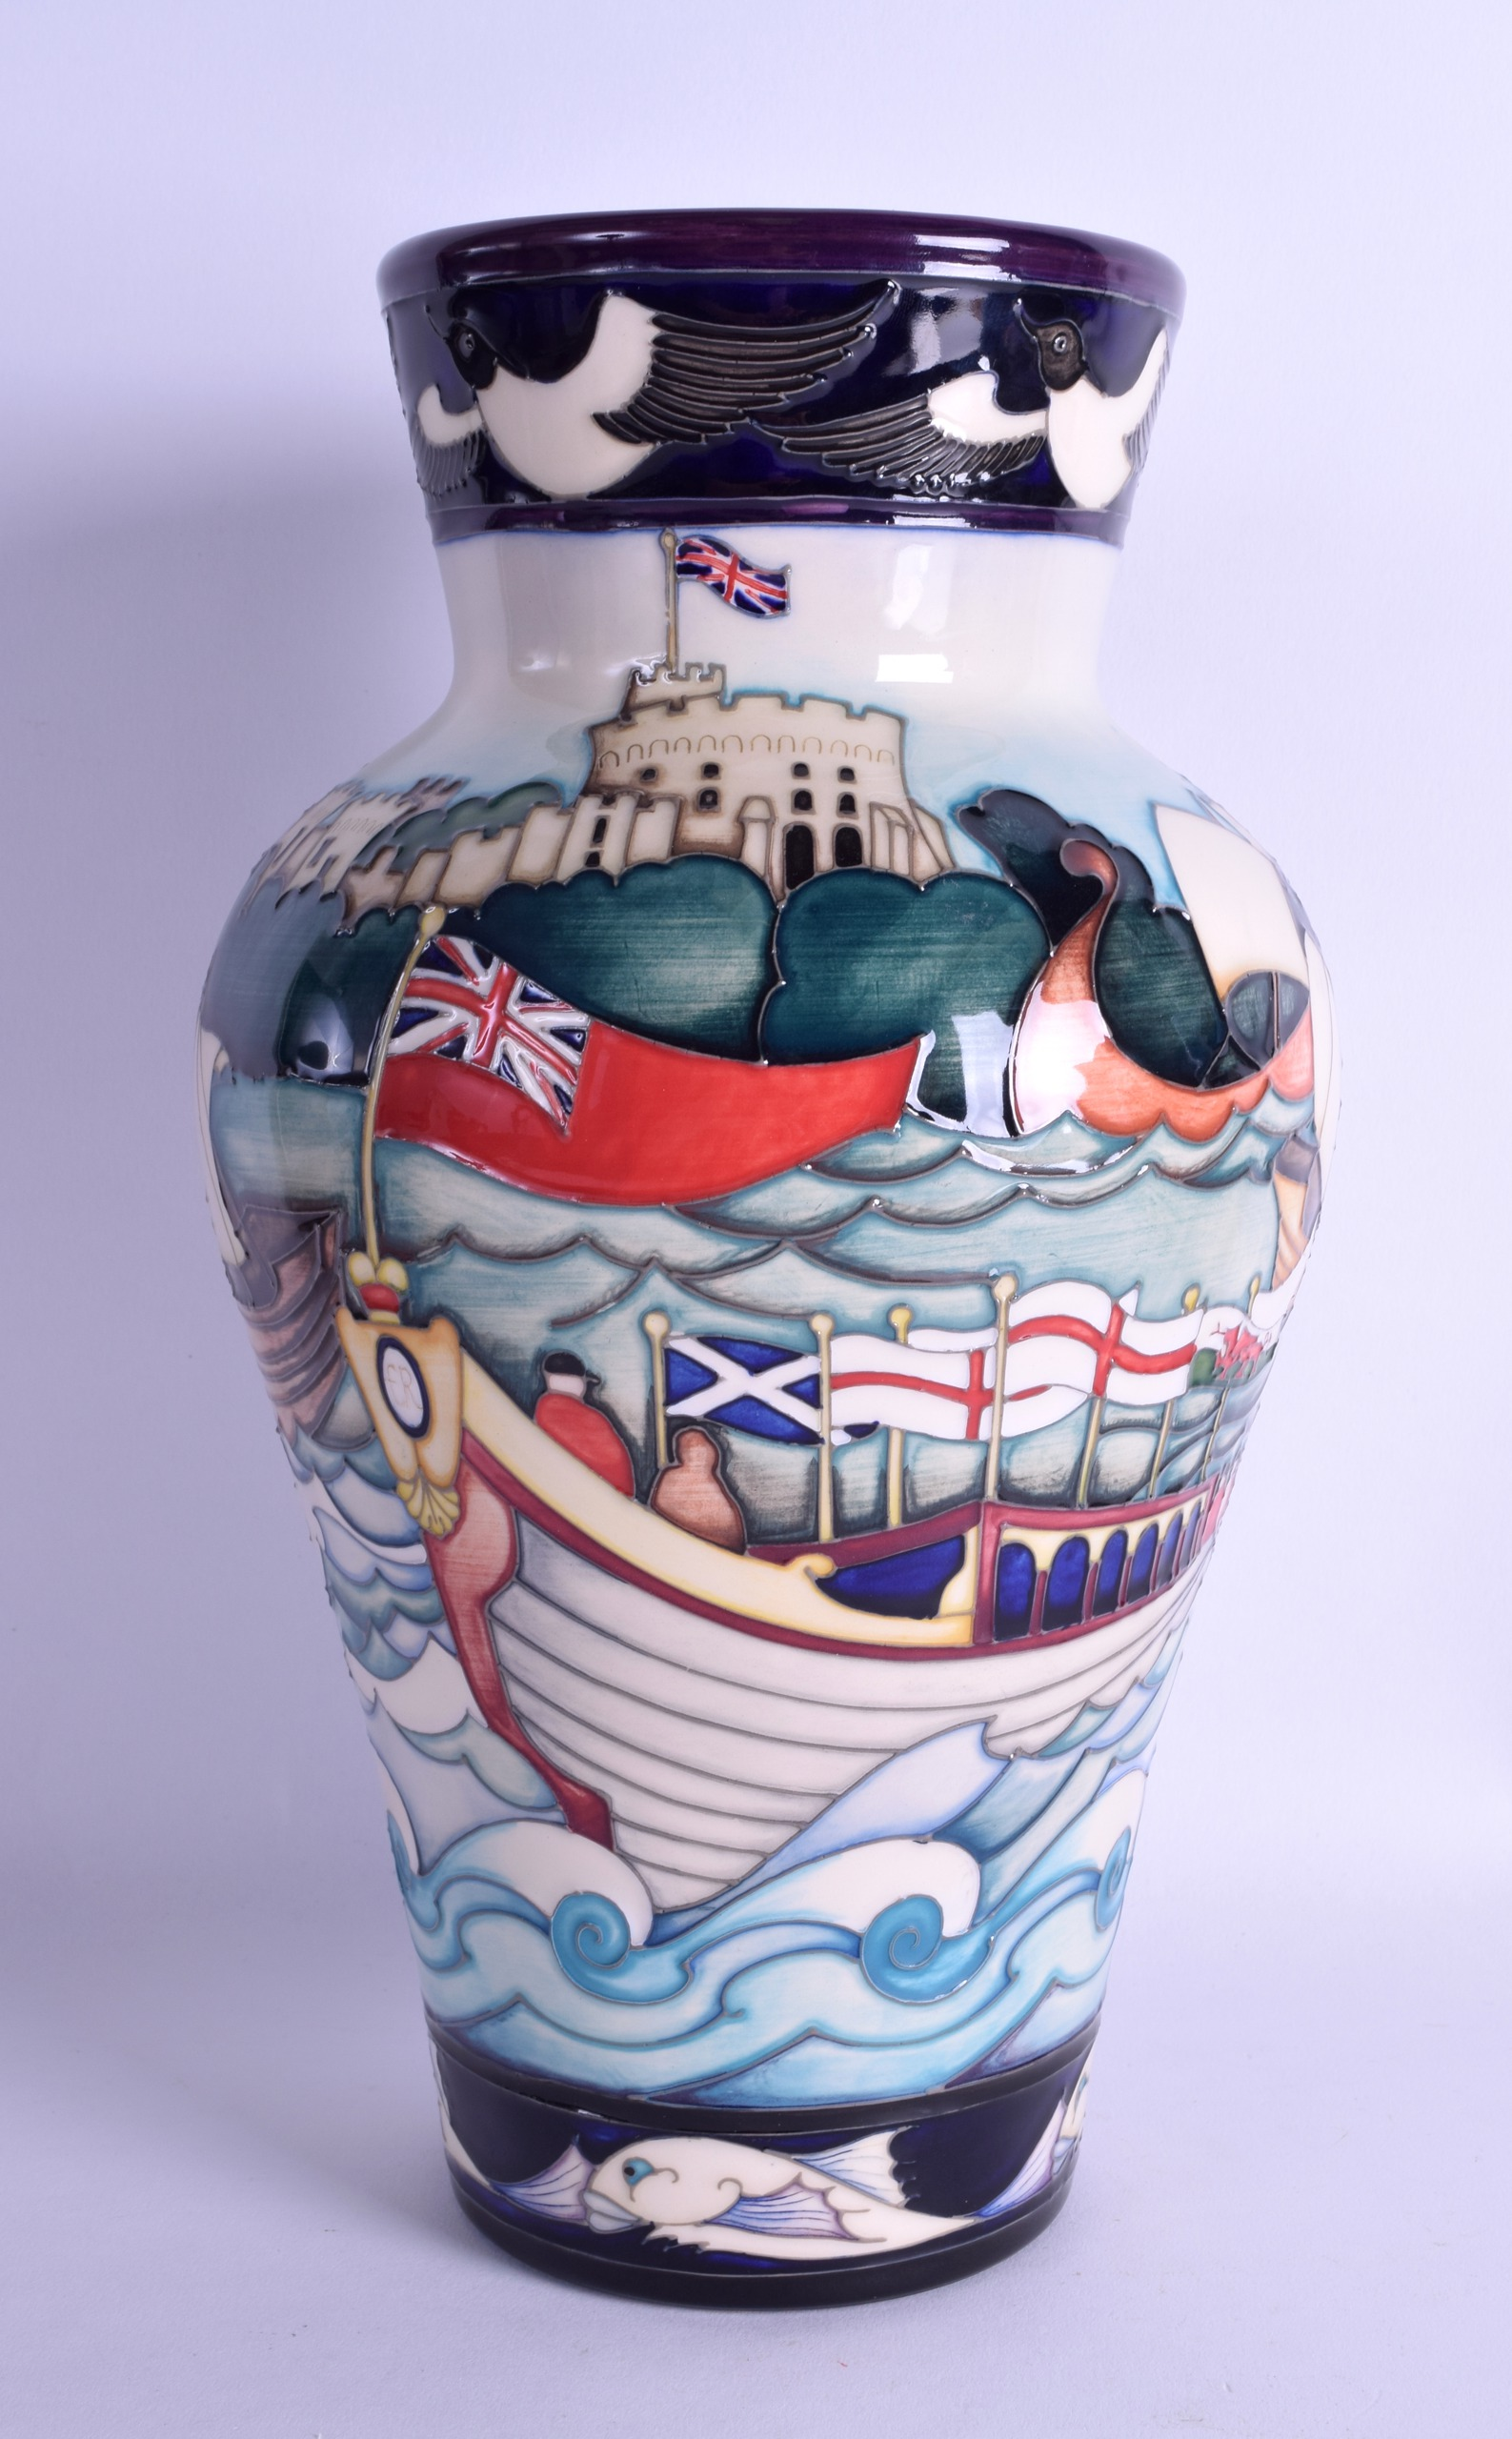 Lot 54 - A MOORCROFT 'GLORIANA' TRIAL VASE designed by Emma Bossons. 30 cm high.